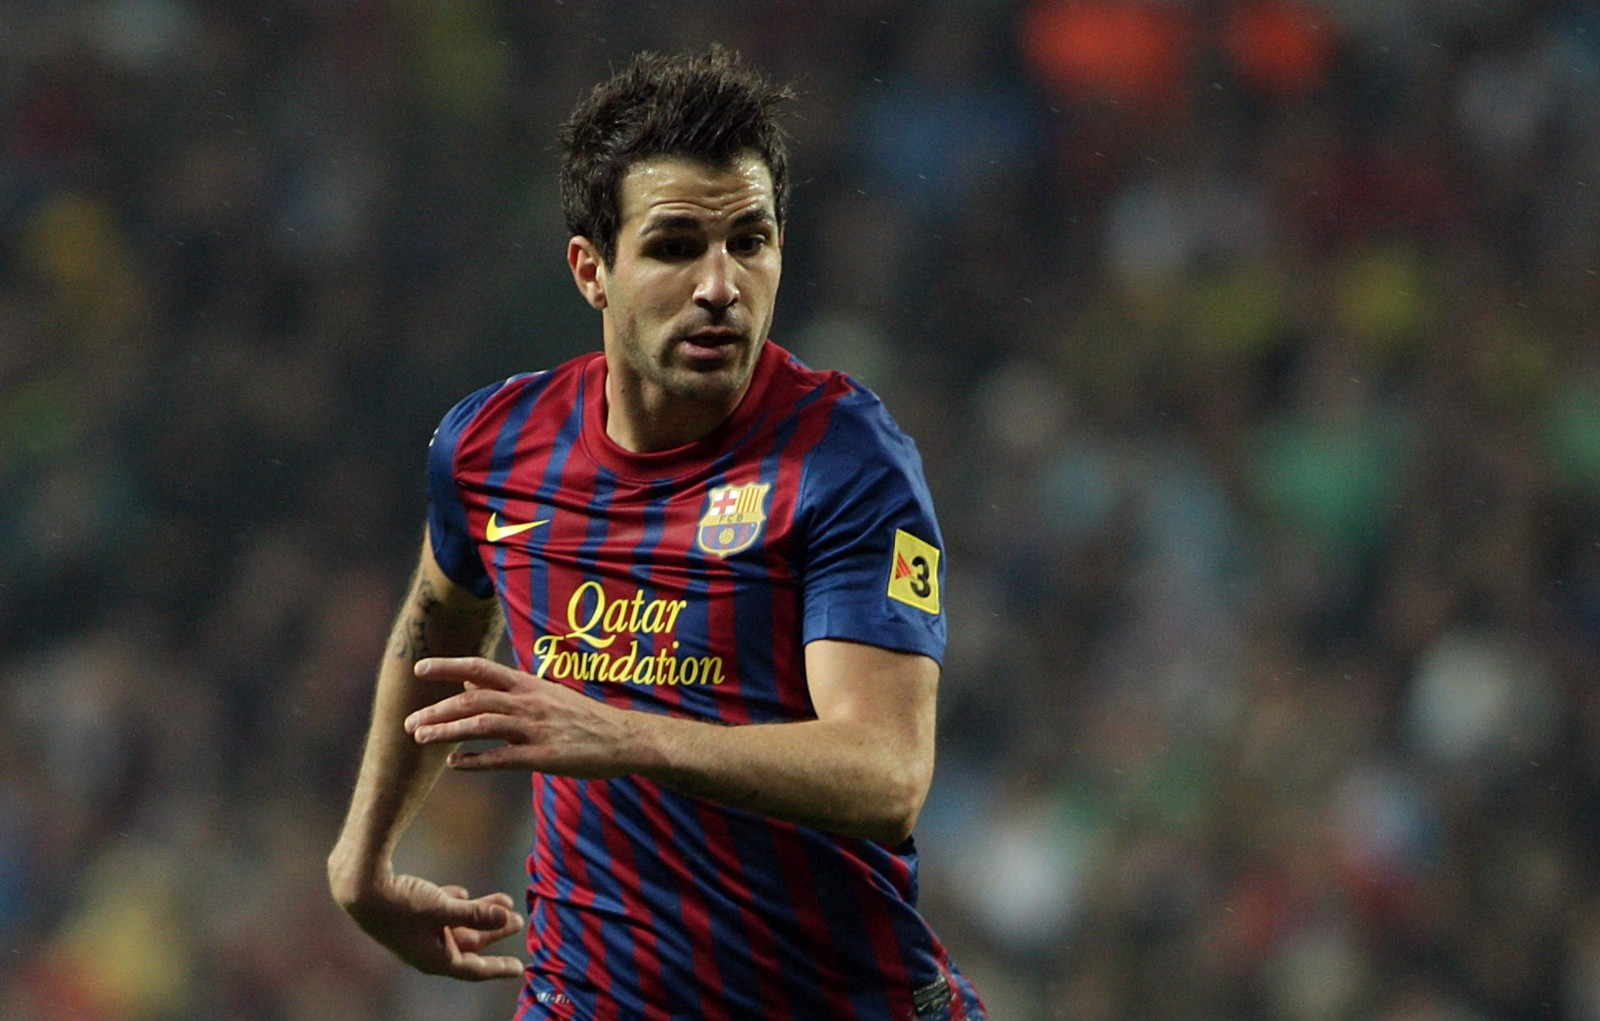 Fabregas Football Players HD Wallpaper Cesc Fabregas Football Players 1600x1021